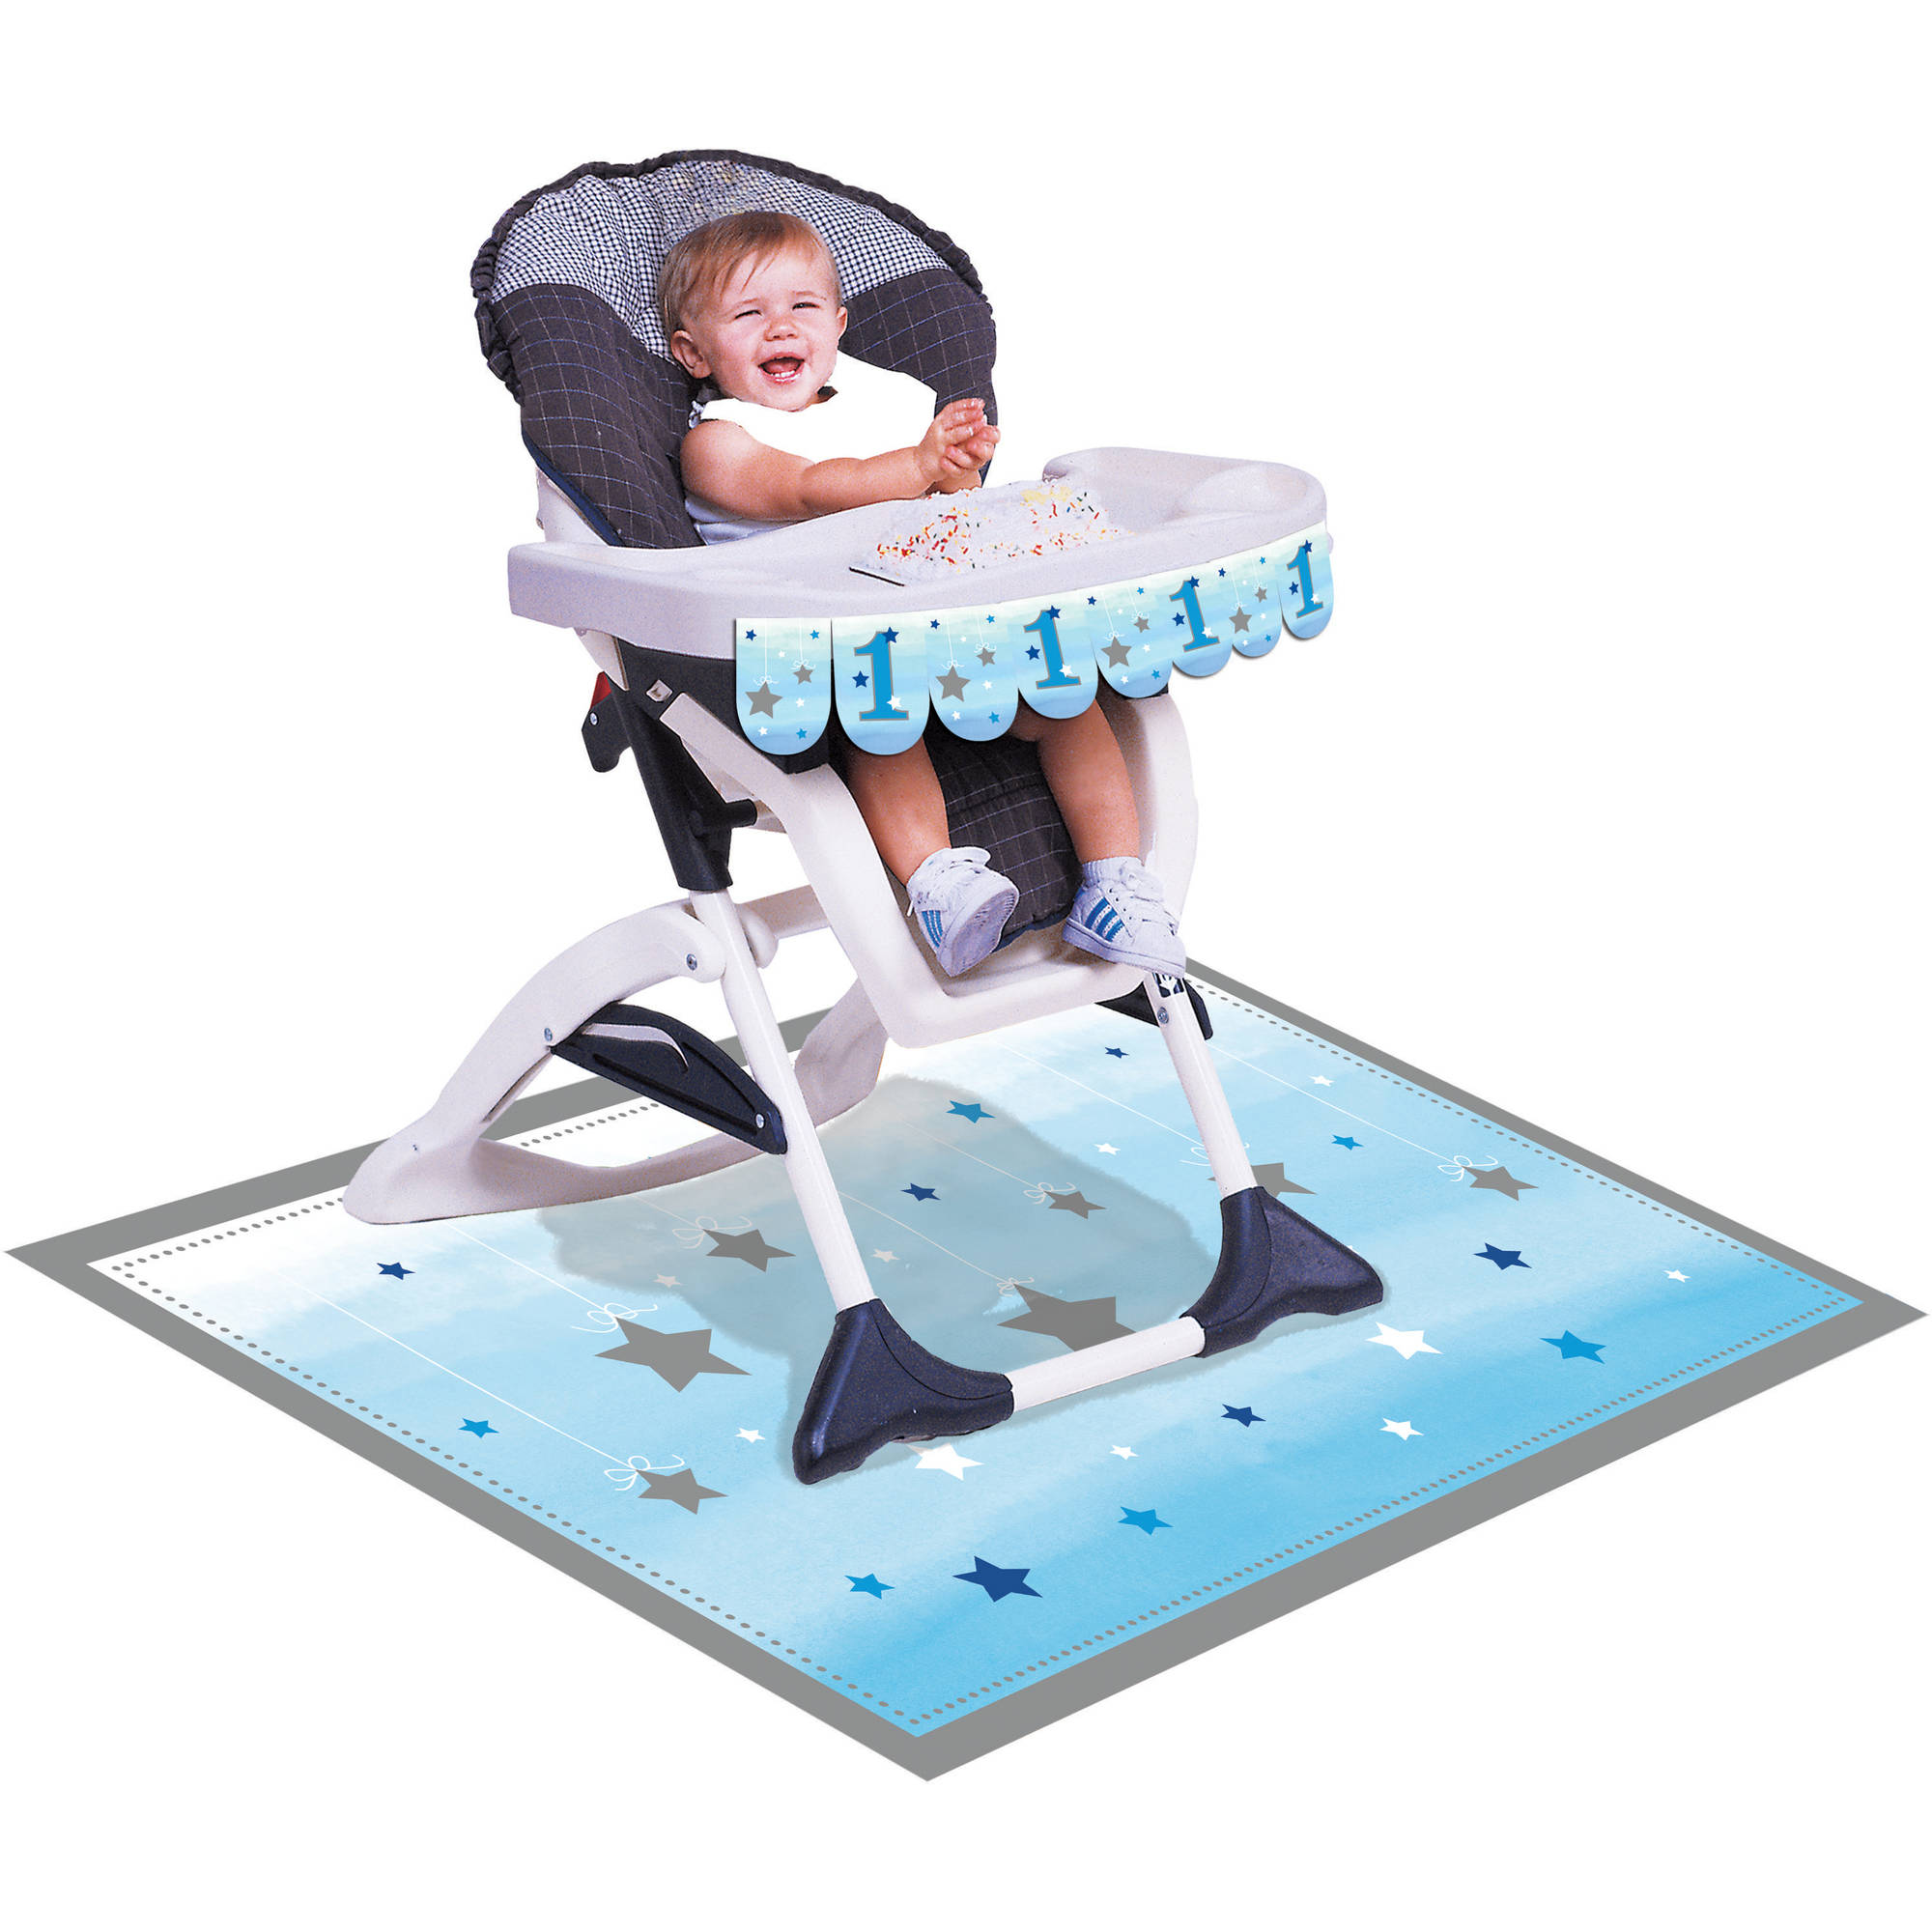 Little Star Boy High Chair Kit Each  sc 1 st  Walmart & Little Star Boy High Chair Kit Each - Walmart.com